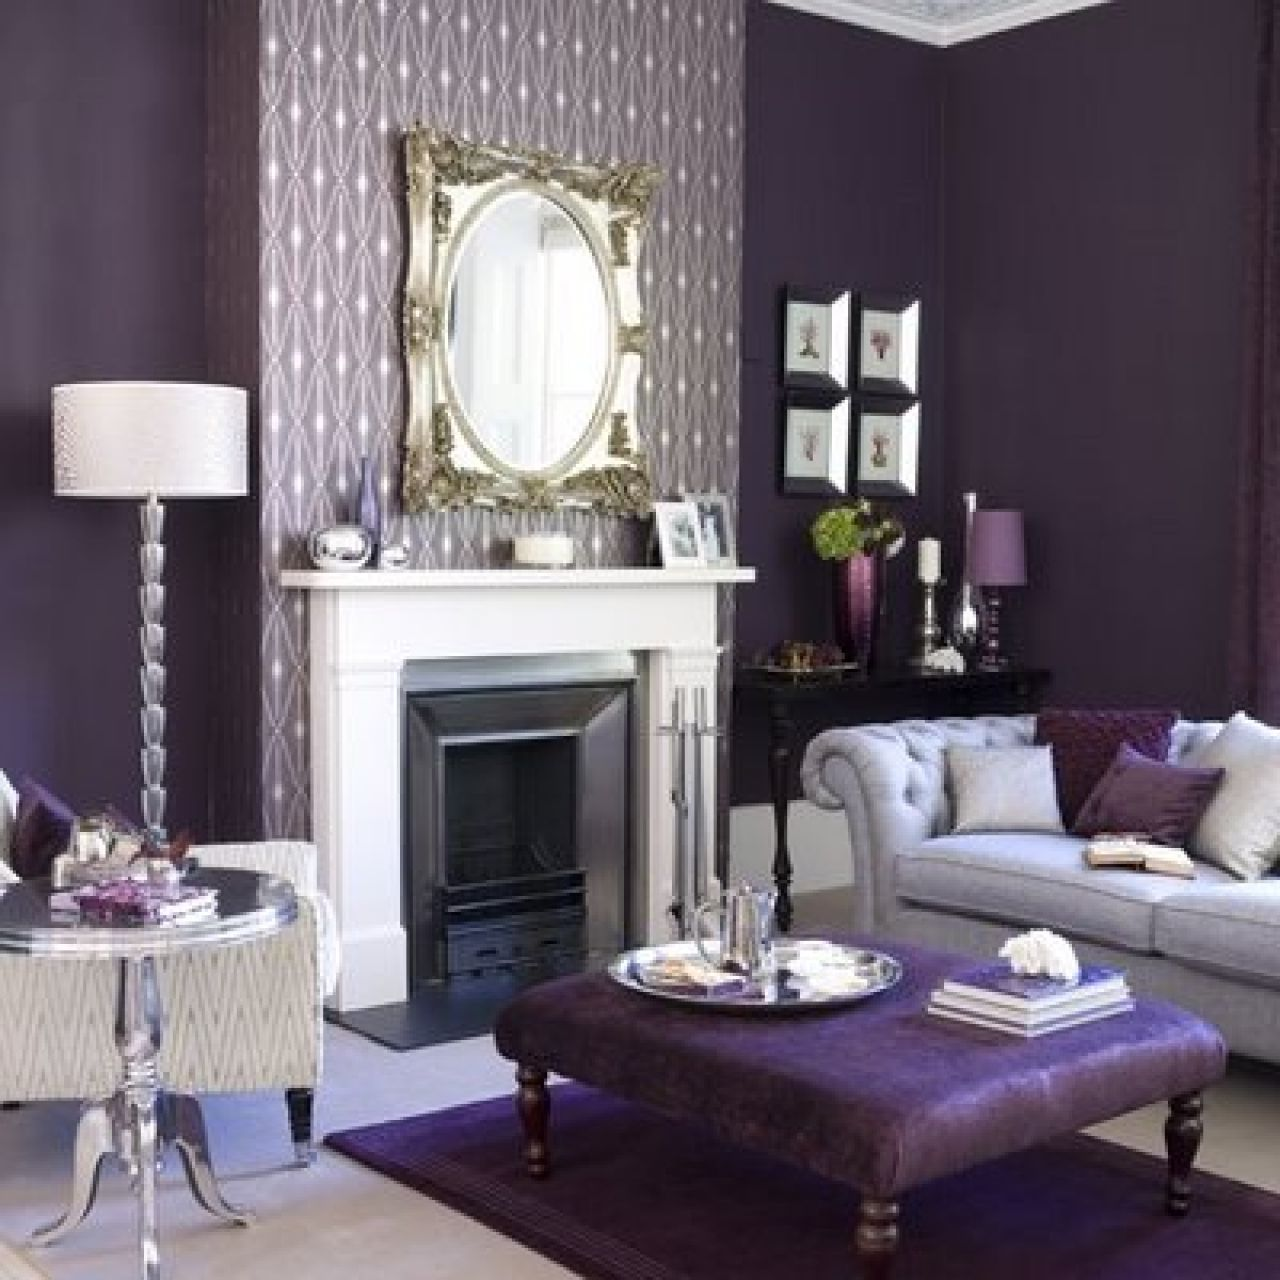 Room Reveal Purple And Grey Living Room: Gothic Purple And White Themed Living Room Design With